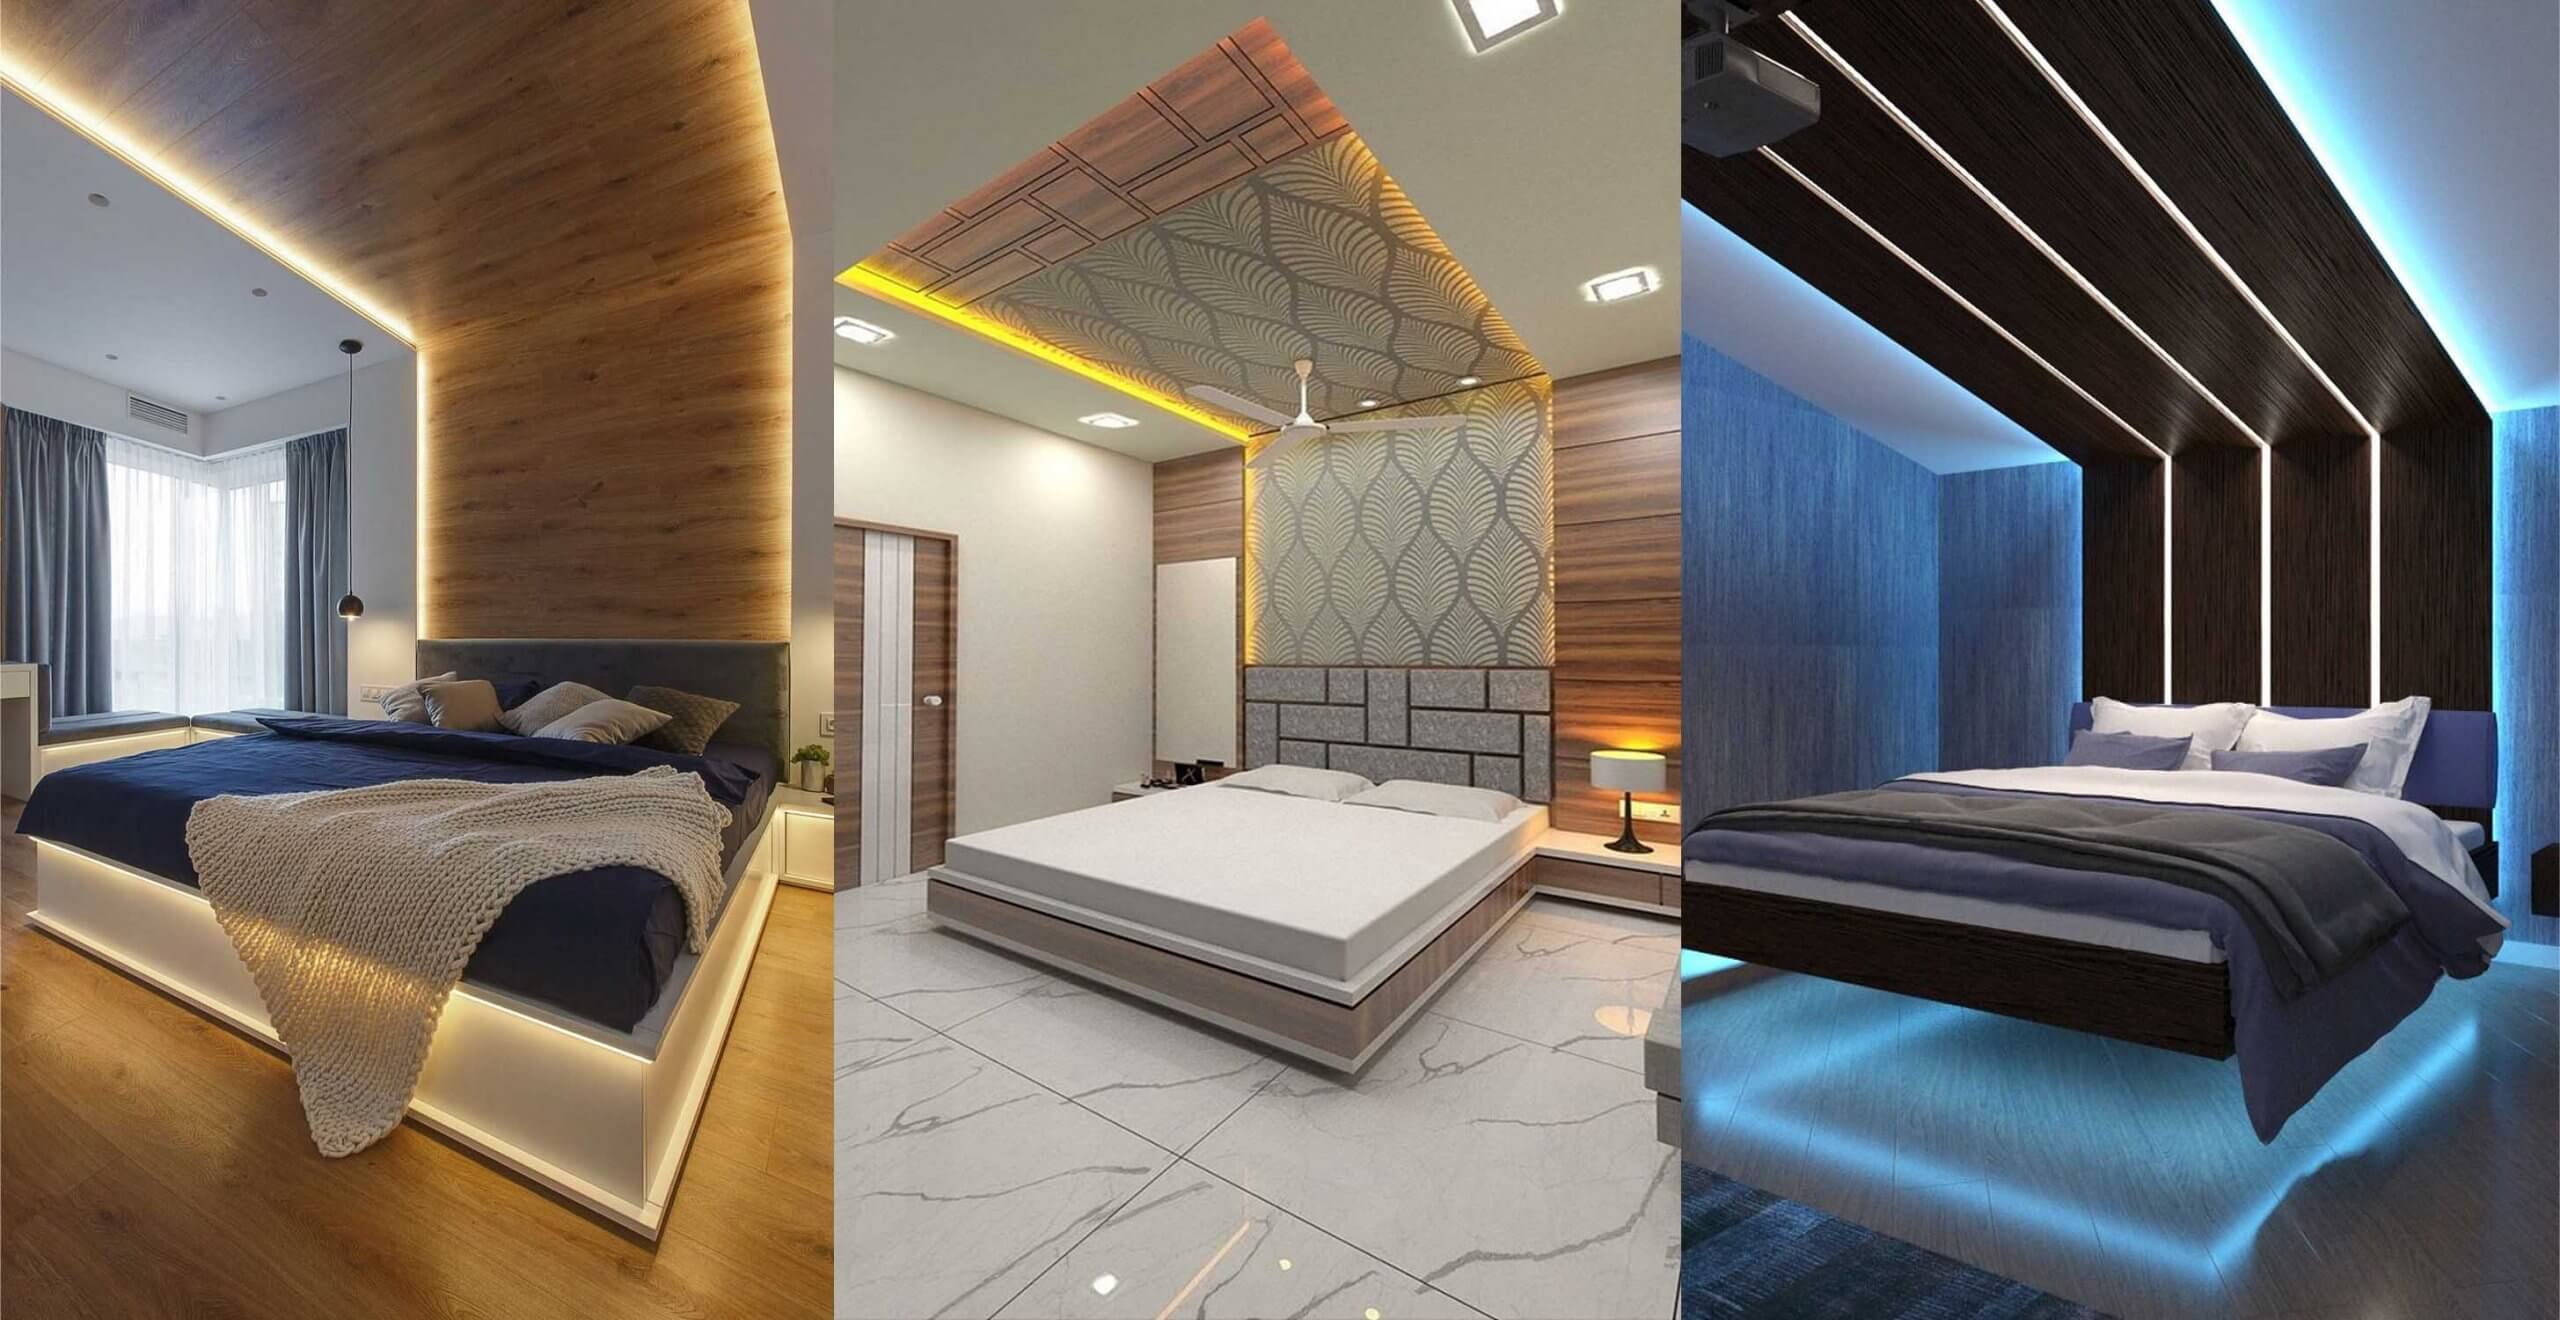 Incredible Modern Bedroom Design Ideas To Get Inspired My Home My Zone